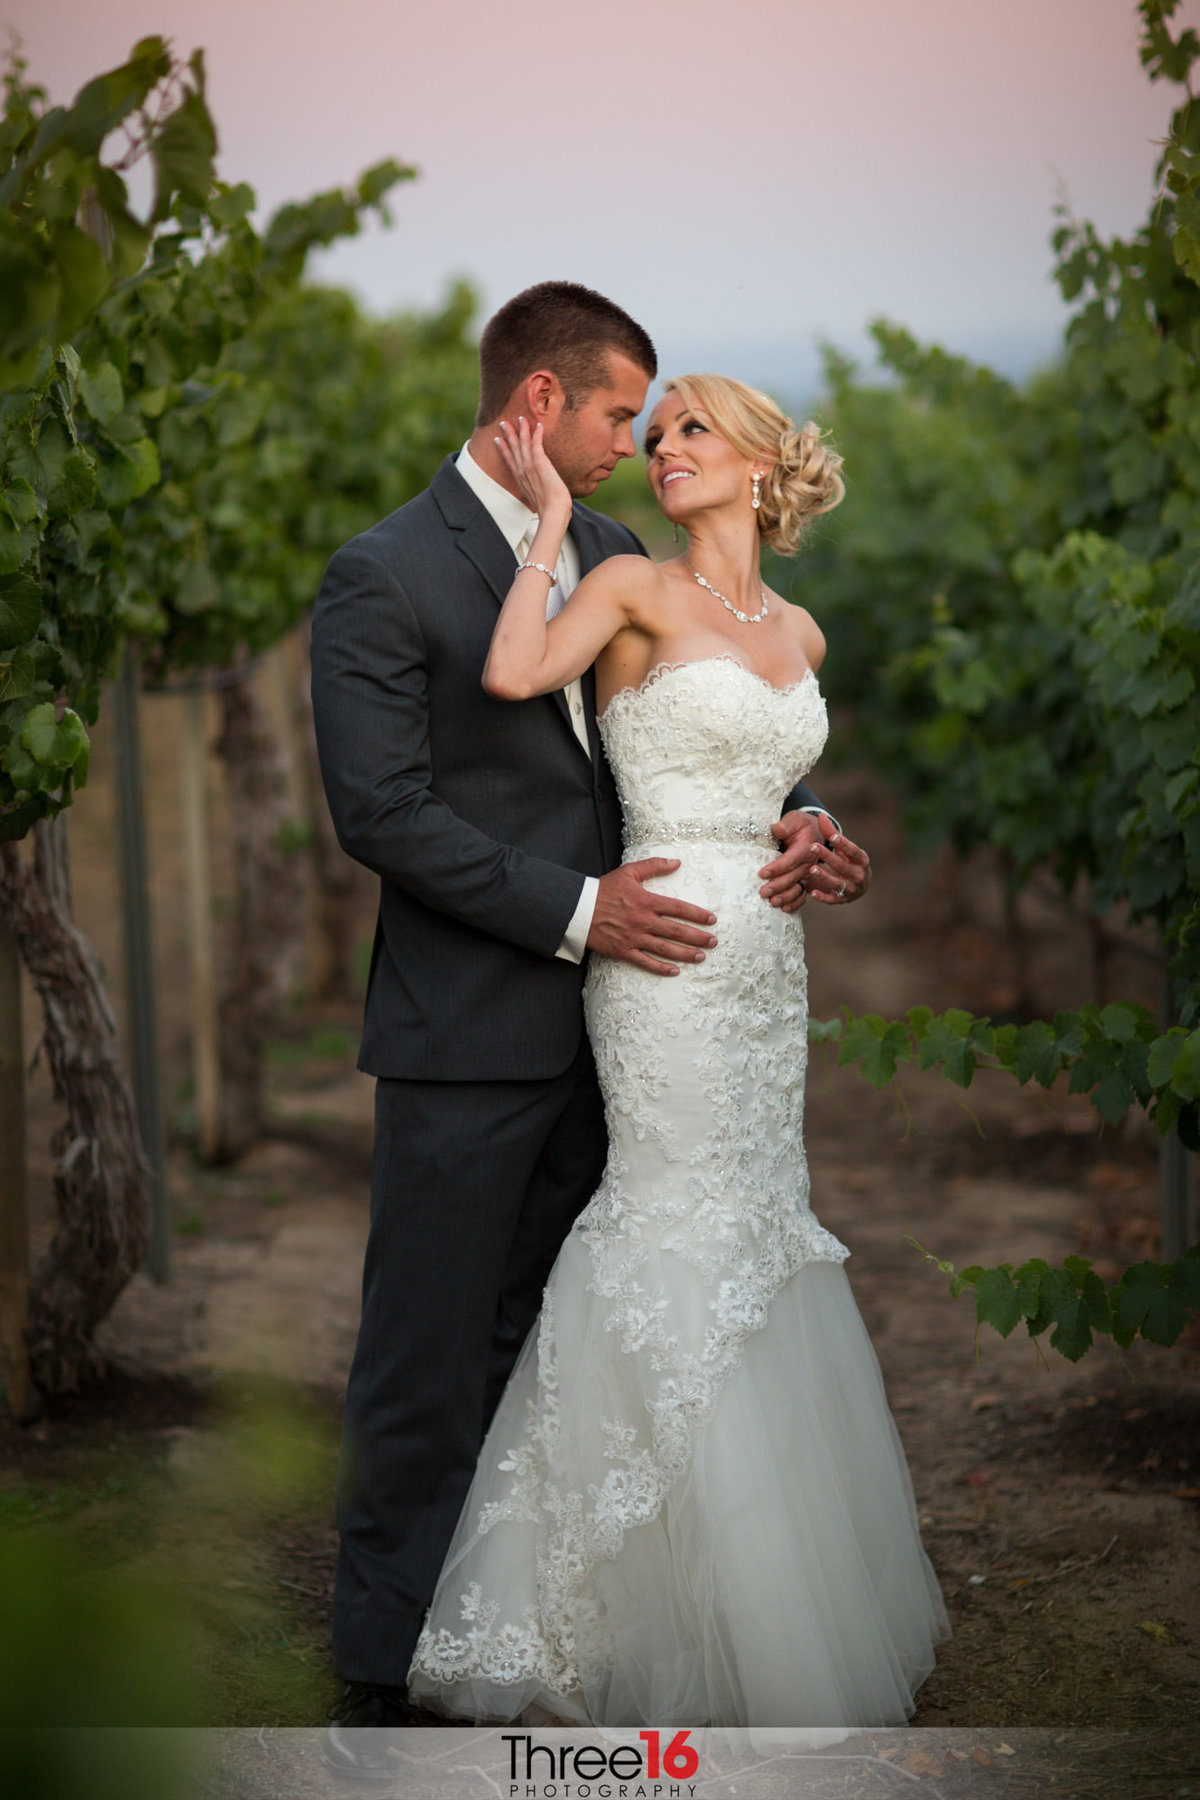 Bride and Groom share an intimate moment in the winery